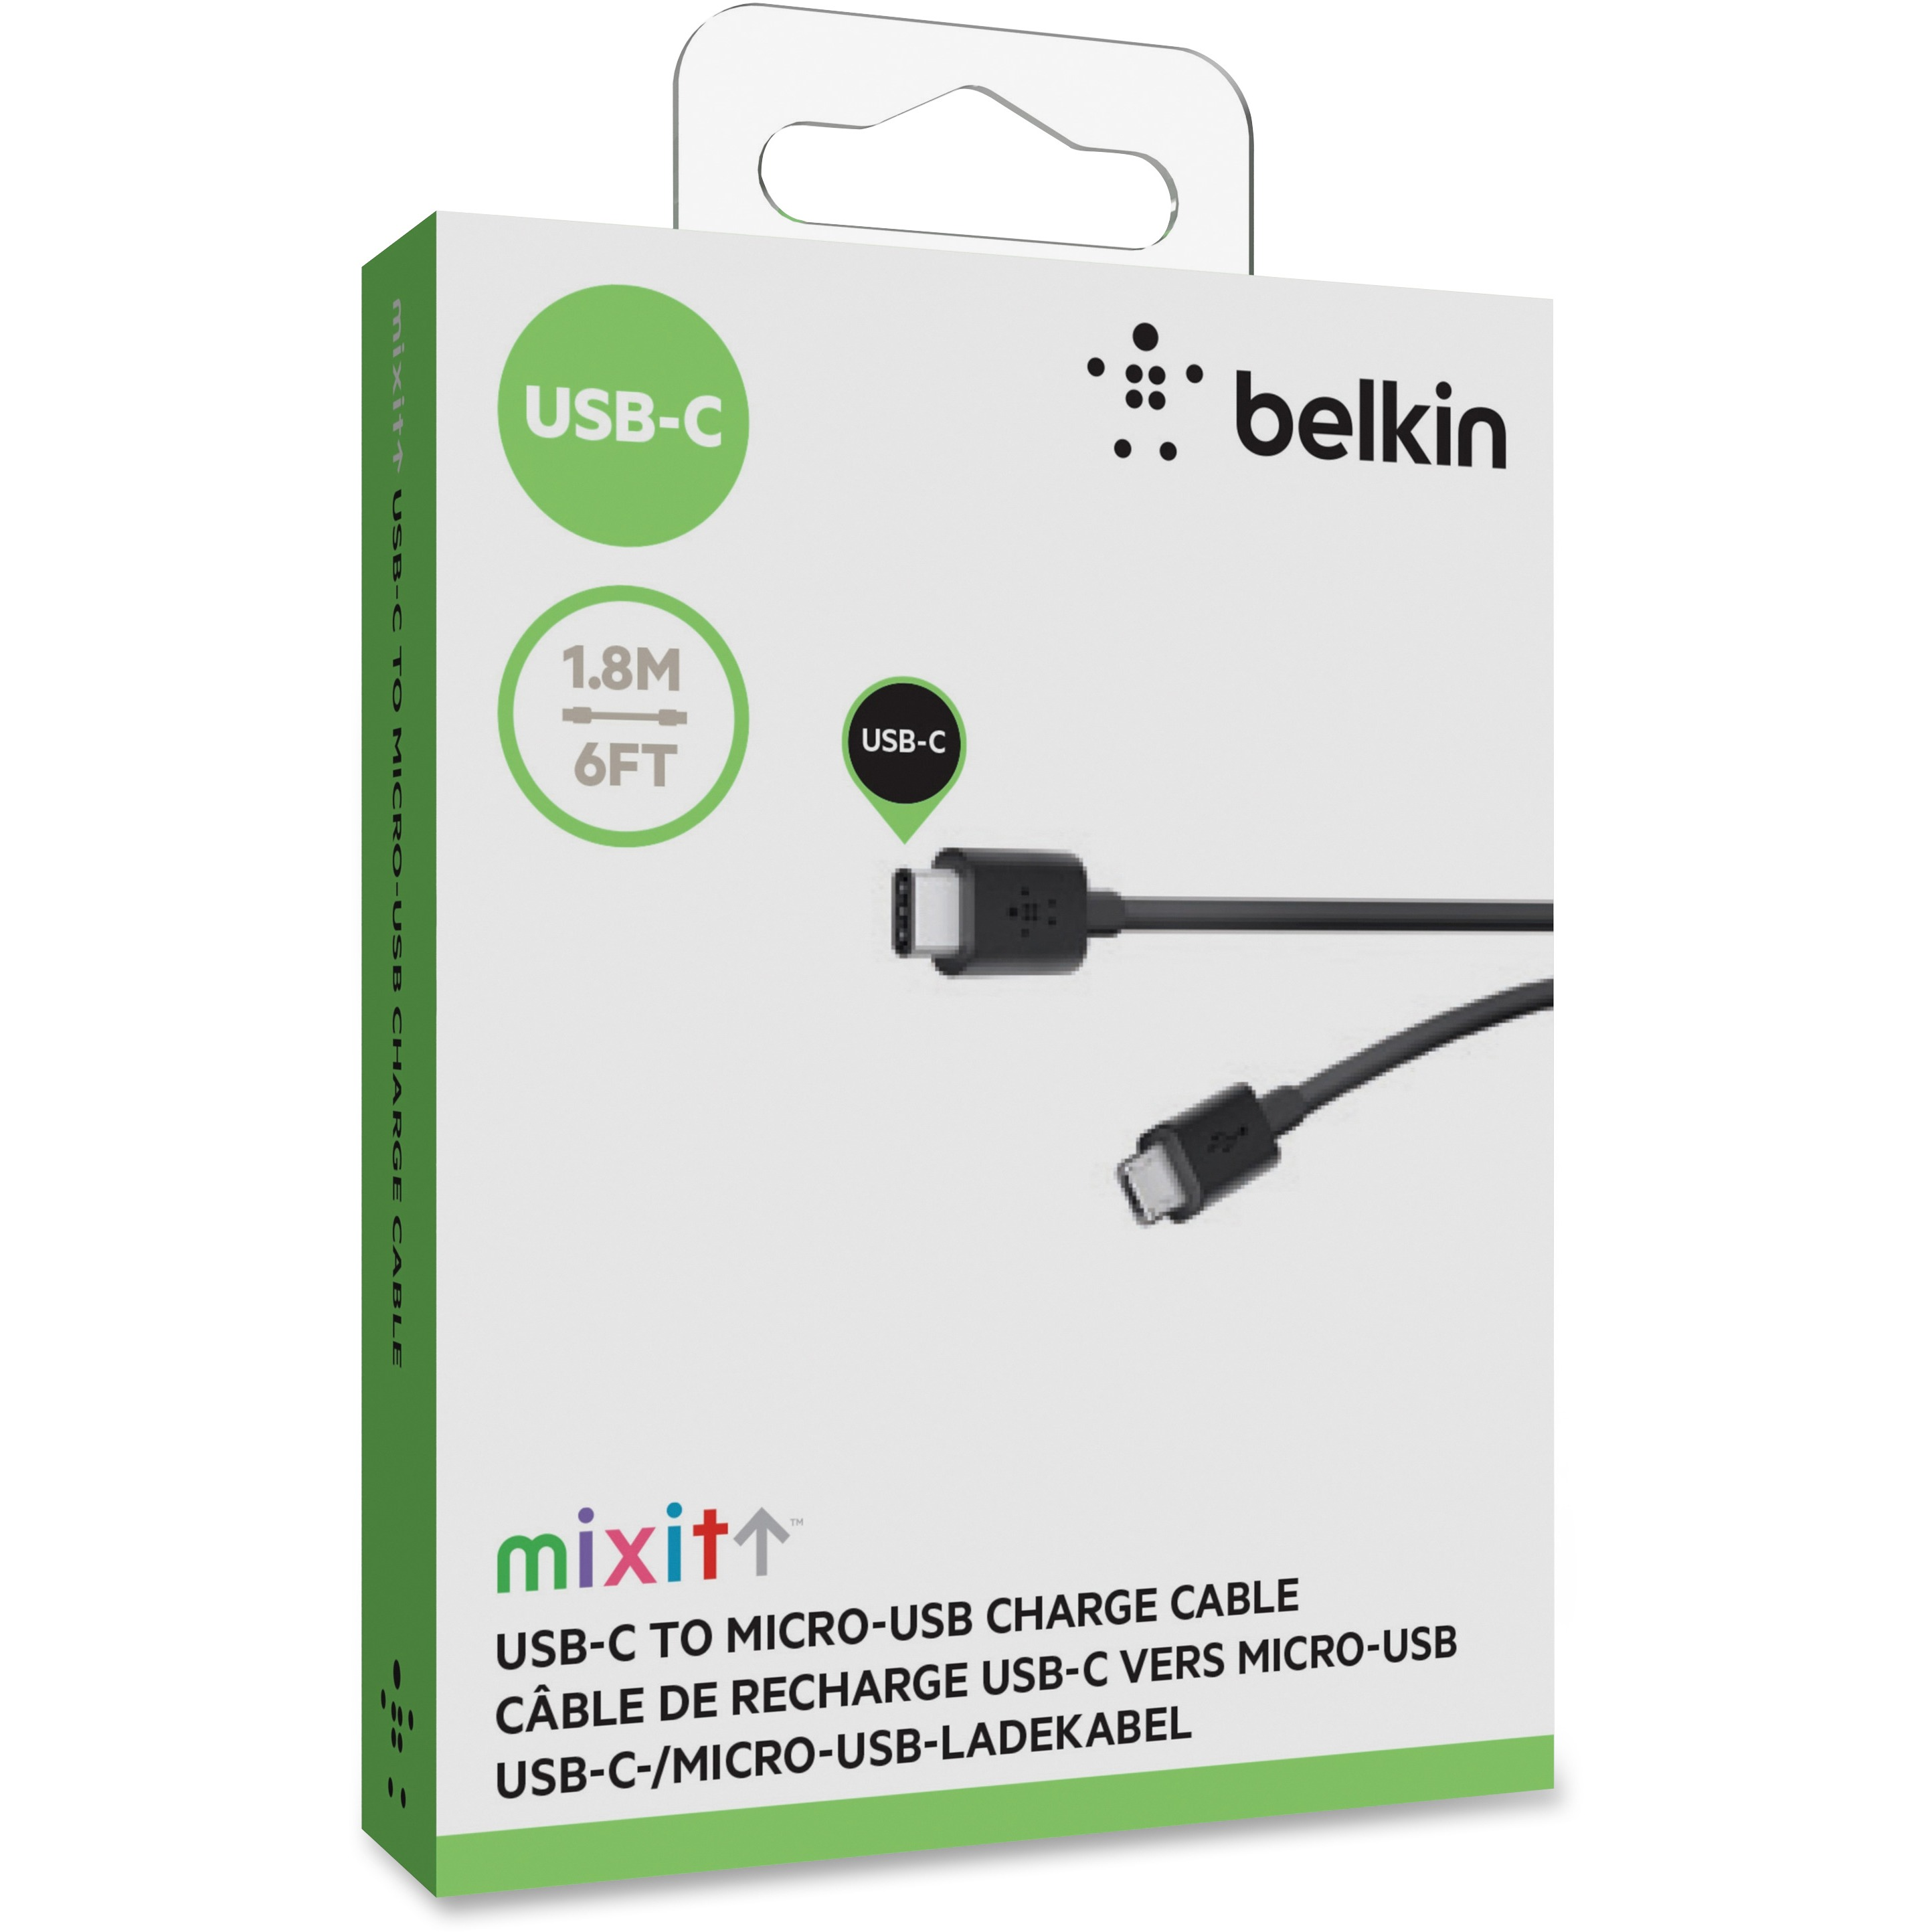 Belkin USB-C 2.0 to microUSB Charge and Sync Cable, 6'